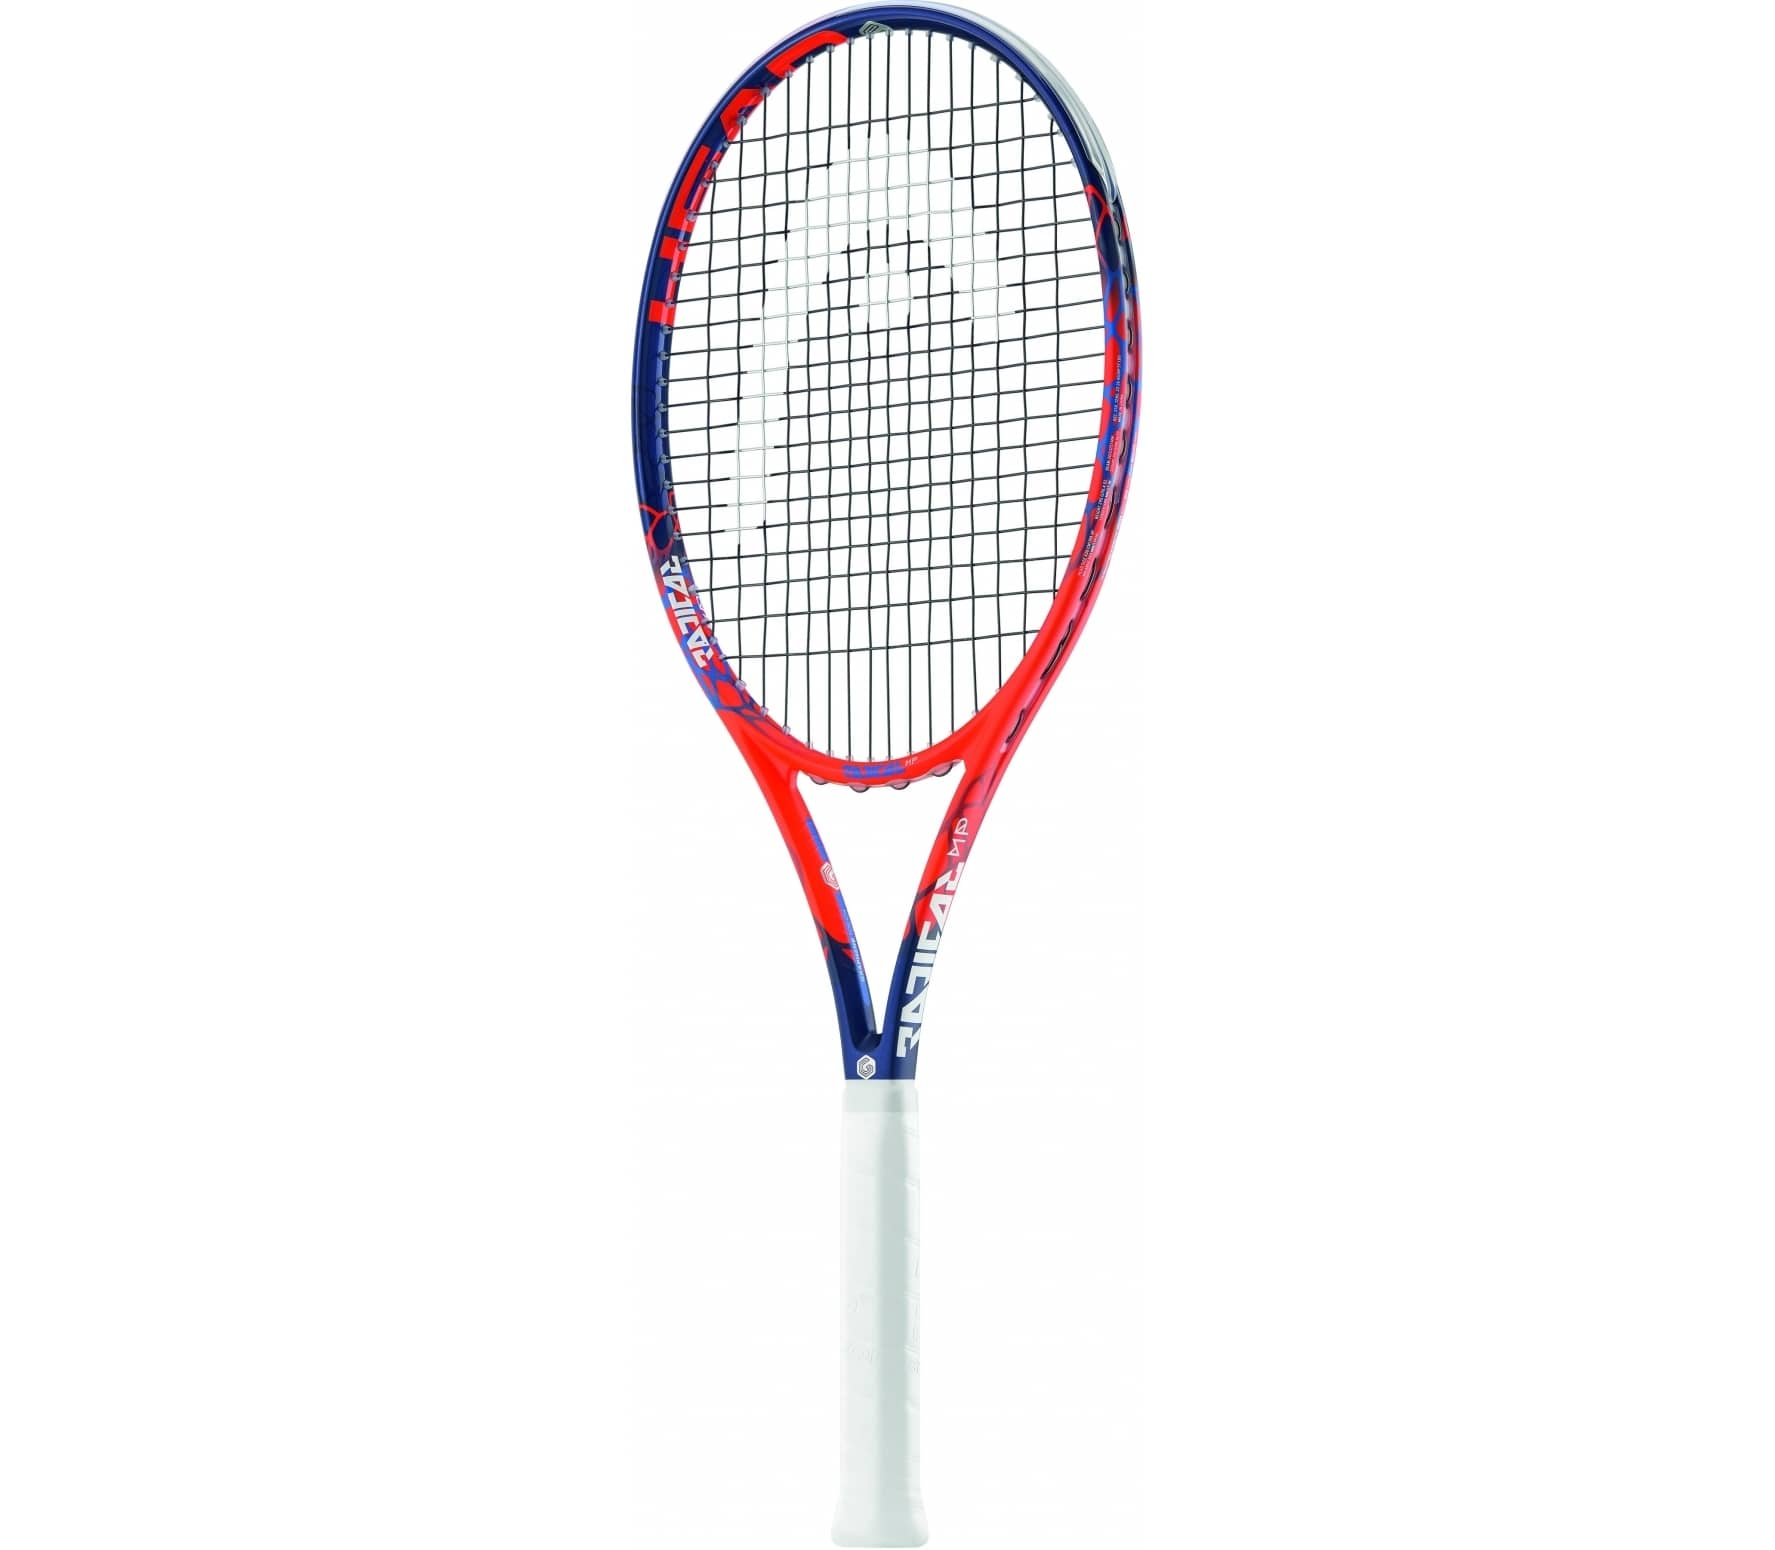 Head - Graphene Touch Radical Mp Tennisschläger (orange/dunkelblau)